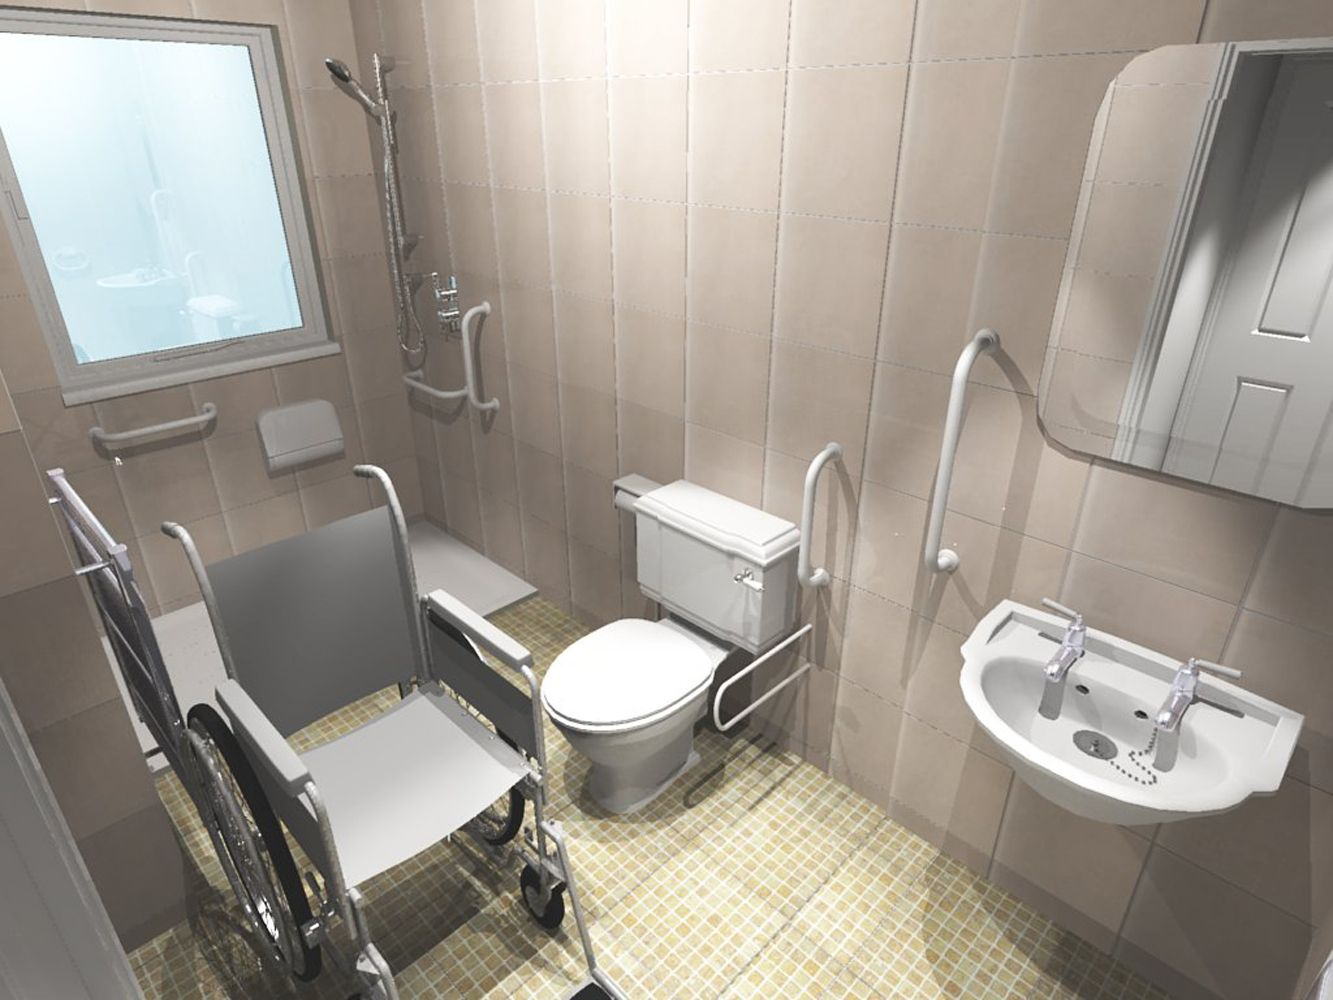 bathroom handicap accessible with chair picture pinned for bar placement ideas - Bathroom Design Ideas Disabled